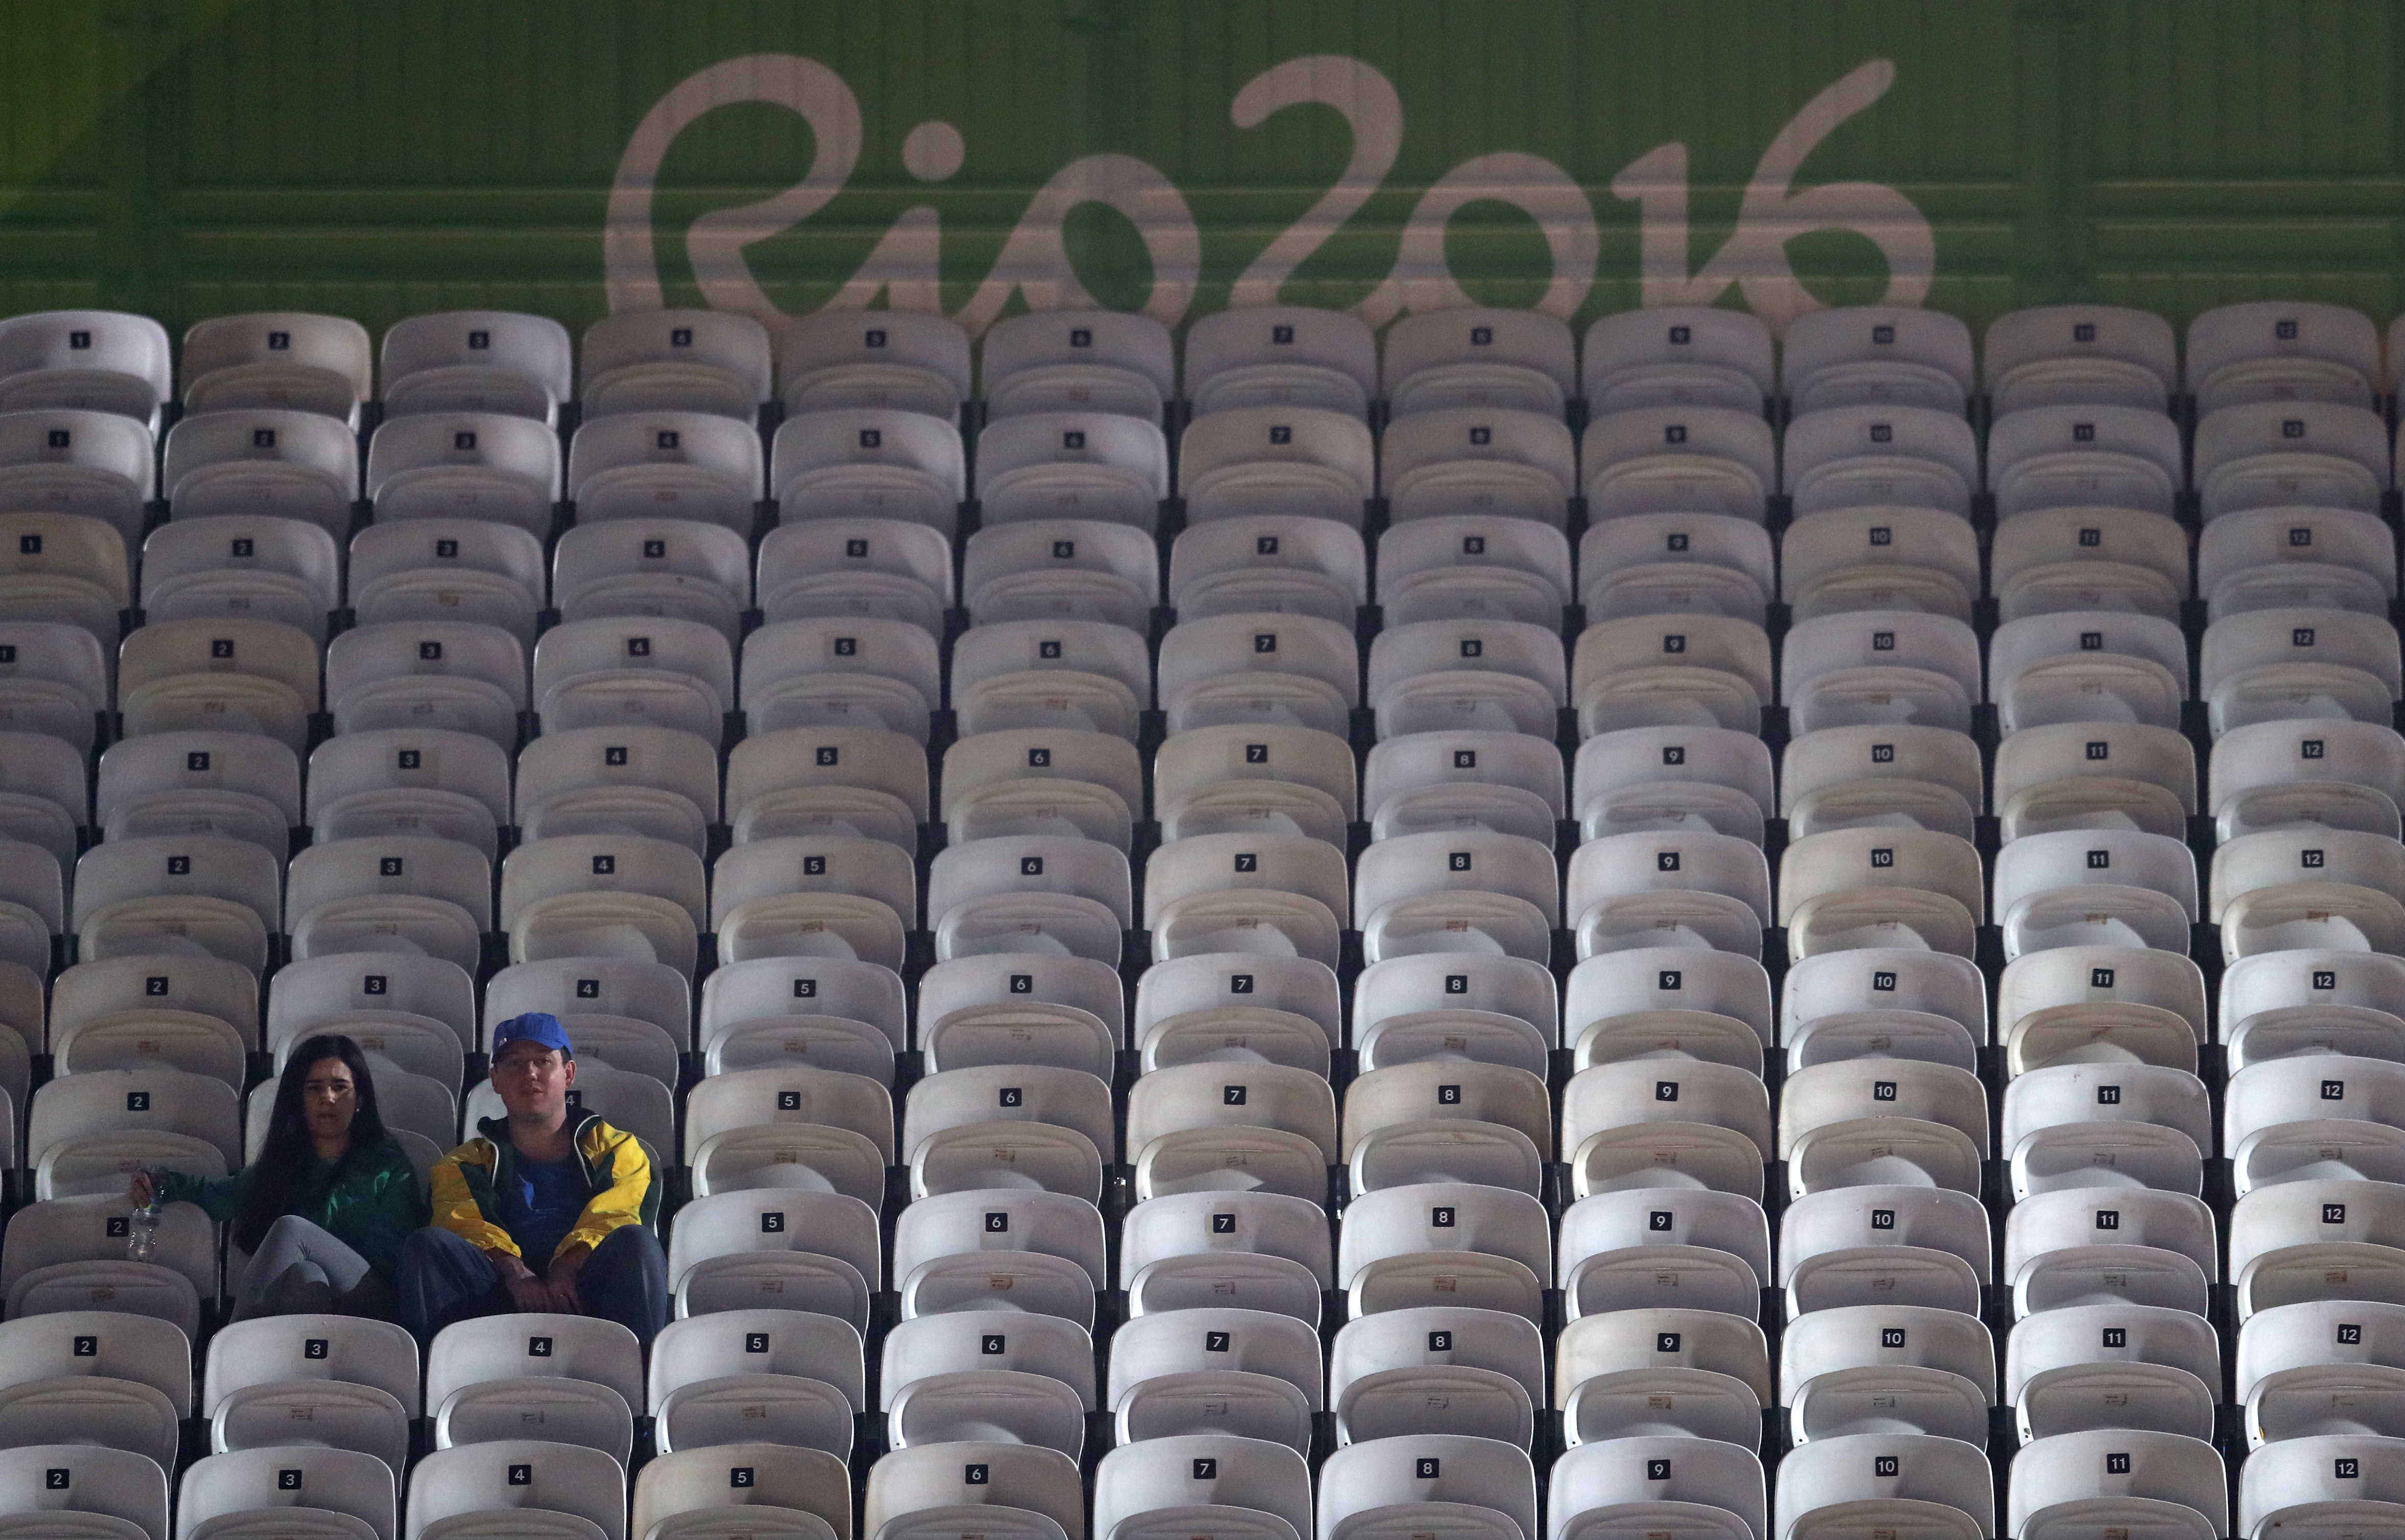 FILE - In this Aug. 8, 2016 photo, spectators surrounded by empty seats watch a men's beach volleyball match between Canada and Latvia at the 2016 Summer Olympics in Rio de Janeiro, Brazil. Halfway through the Olympics, Rio de Janeiro is still struggling